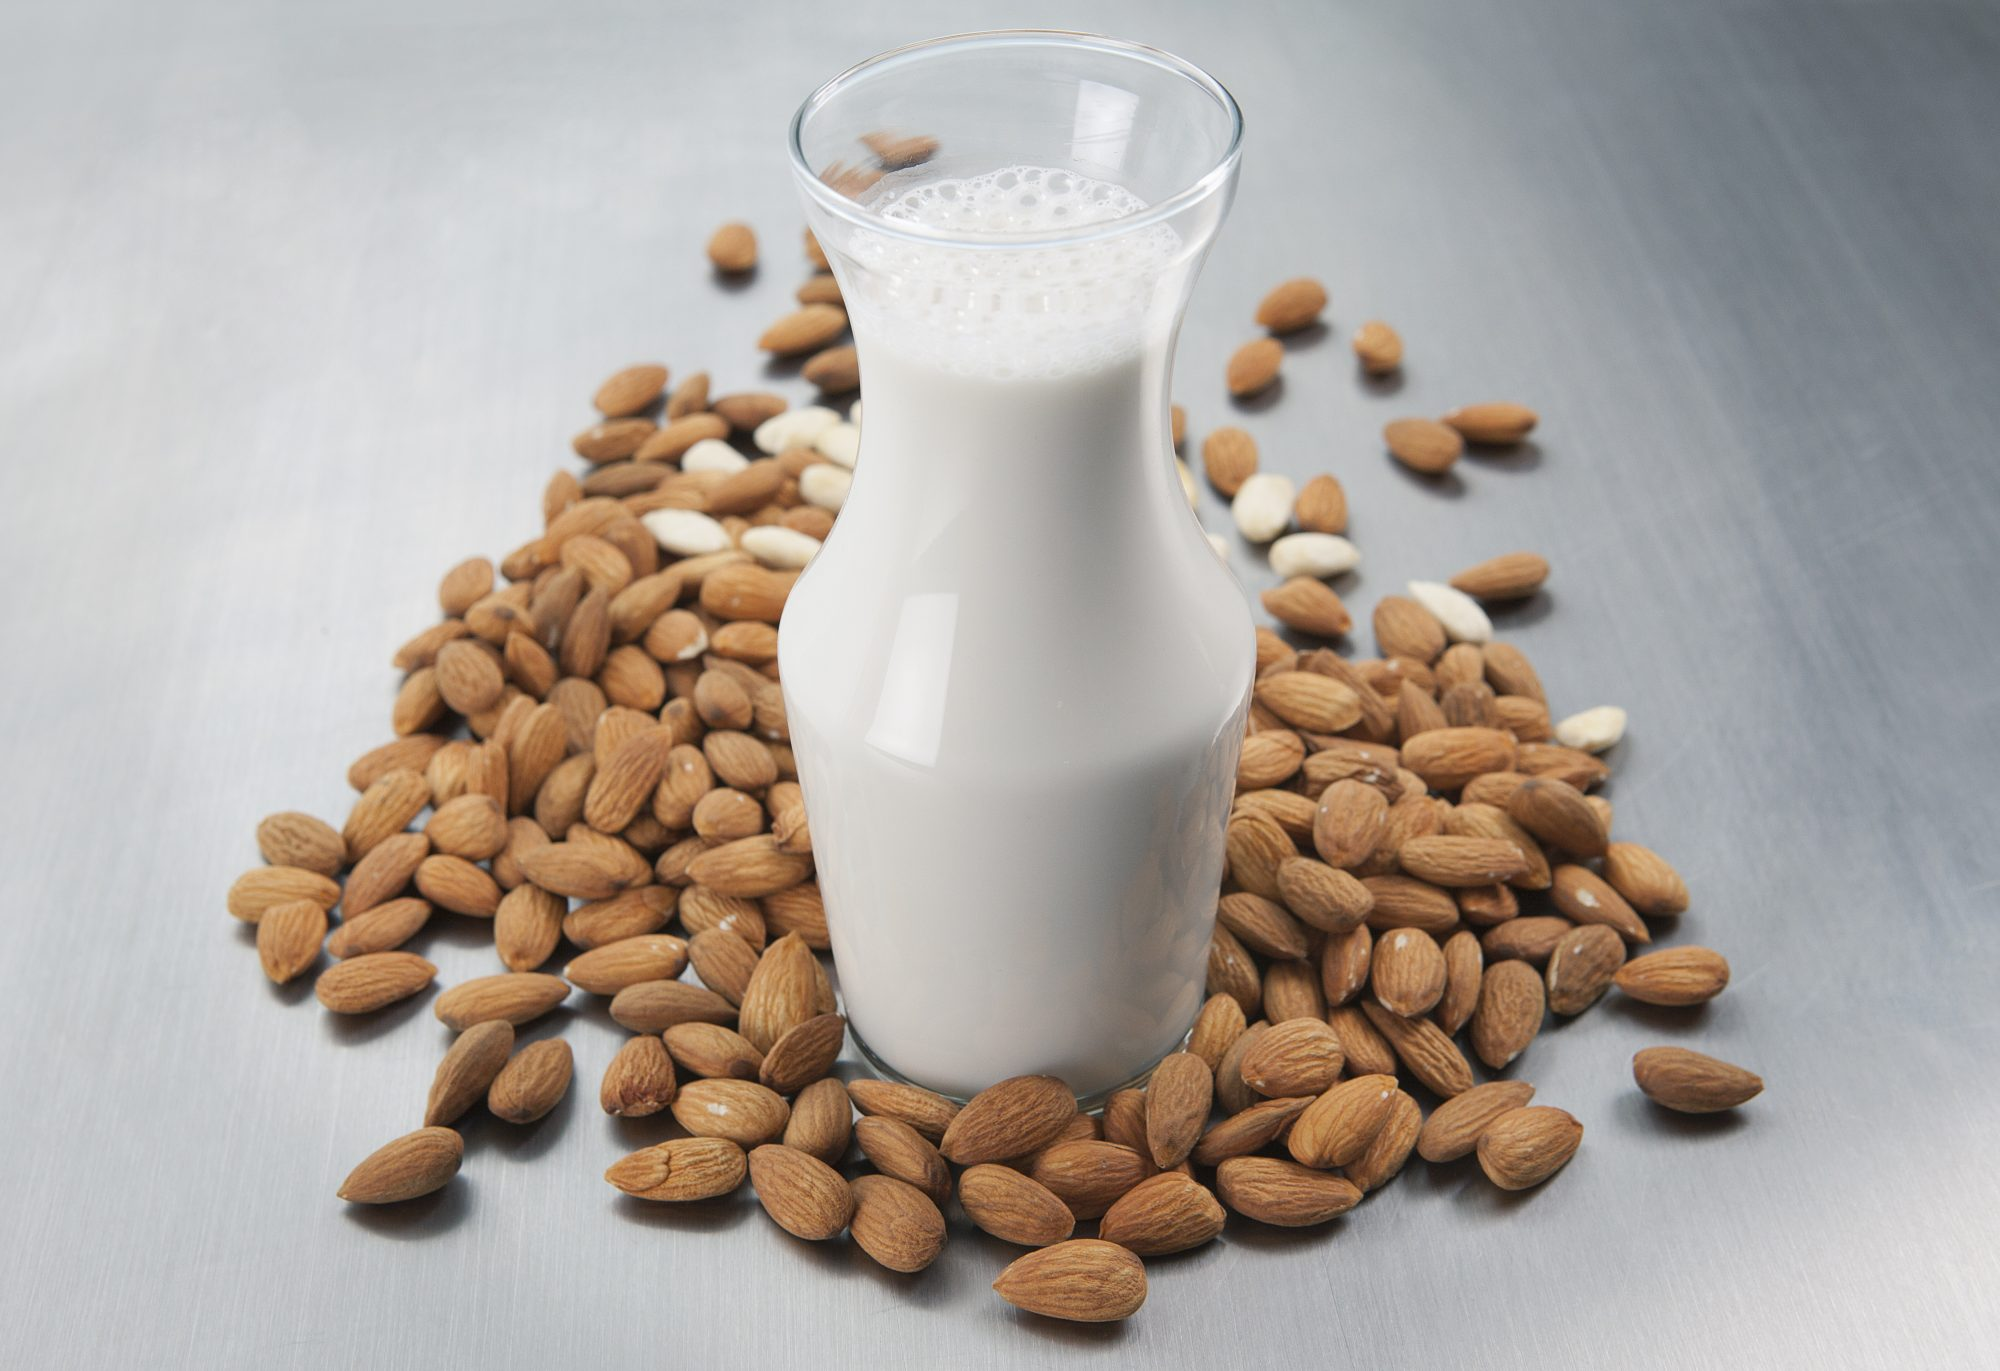 Do You Actually Need to Use Almond Milk Within 7-10 Days?